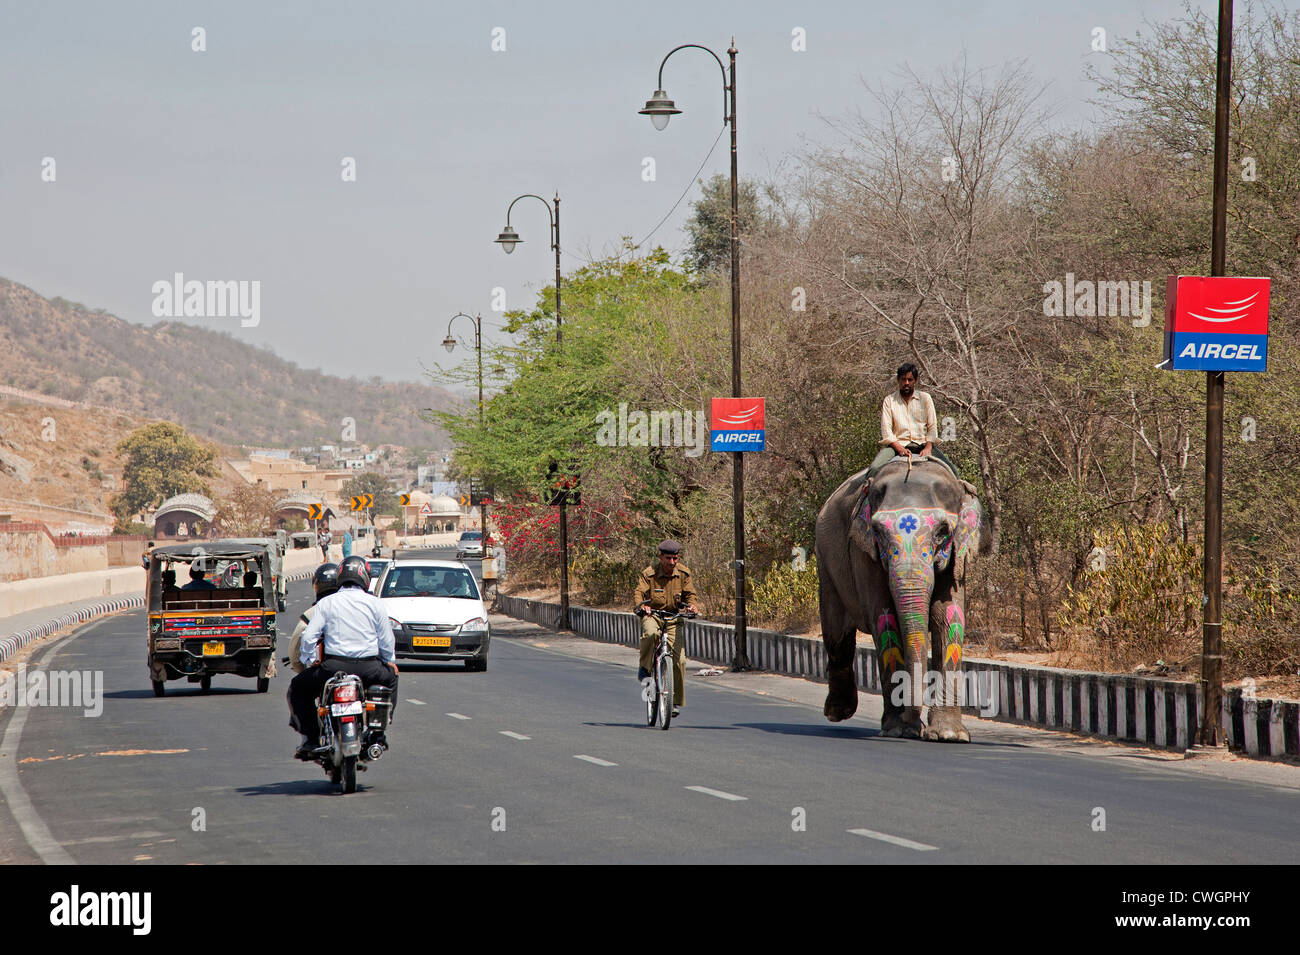 Mahout riding decorated Indian elephant on the road among traffic at Jaipur, Rajasthan, India - Stock Image